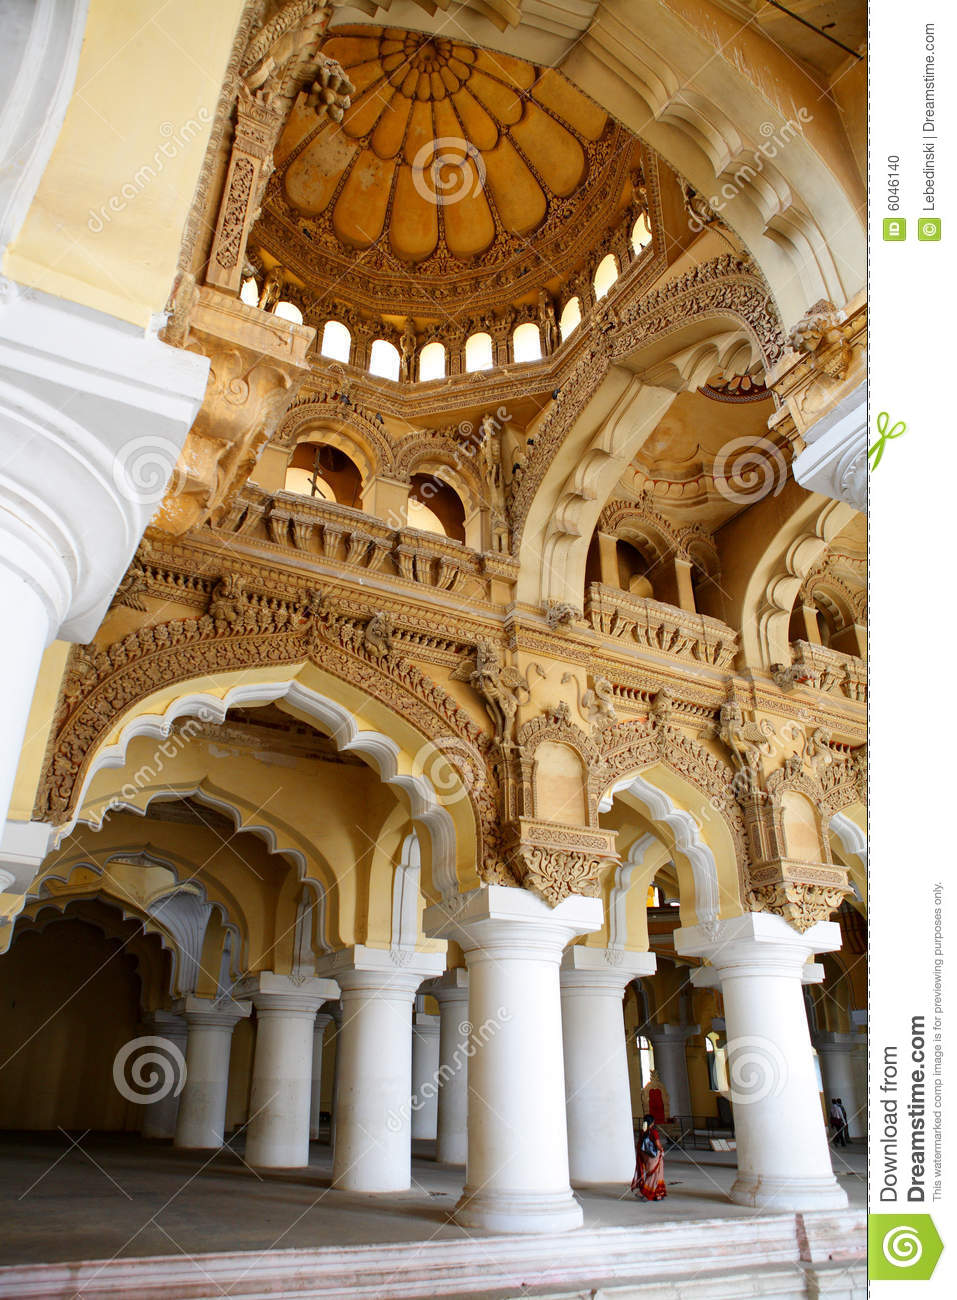 Ancient palace interior stock photo Image of building